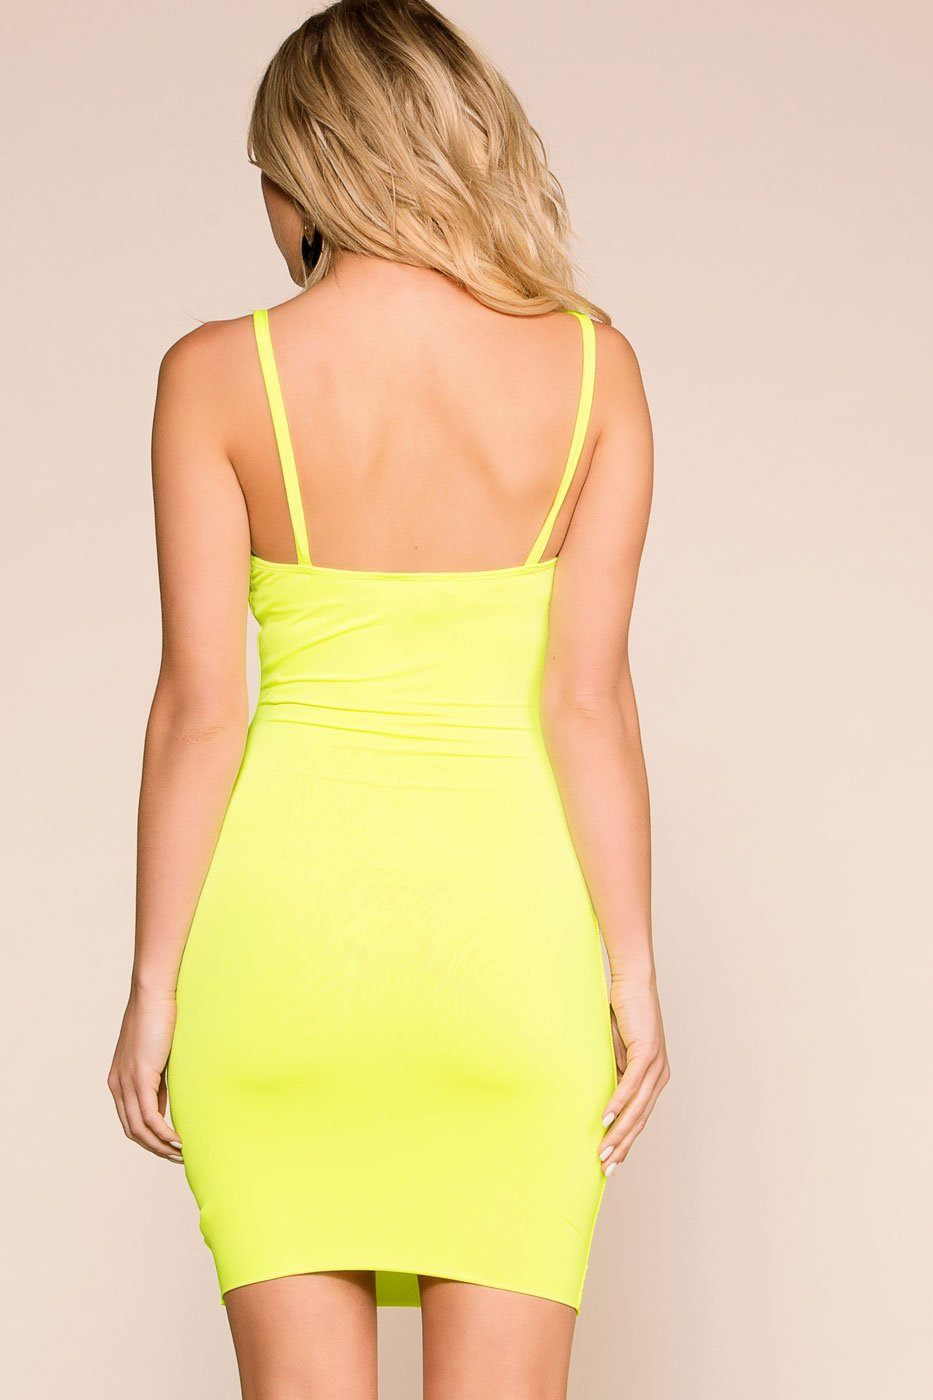 7b10f5b3b9 ... Priceless | Neon Lime | Bodycon Dress | Womens ...